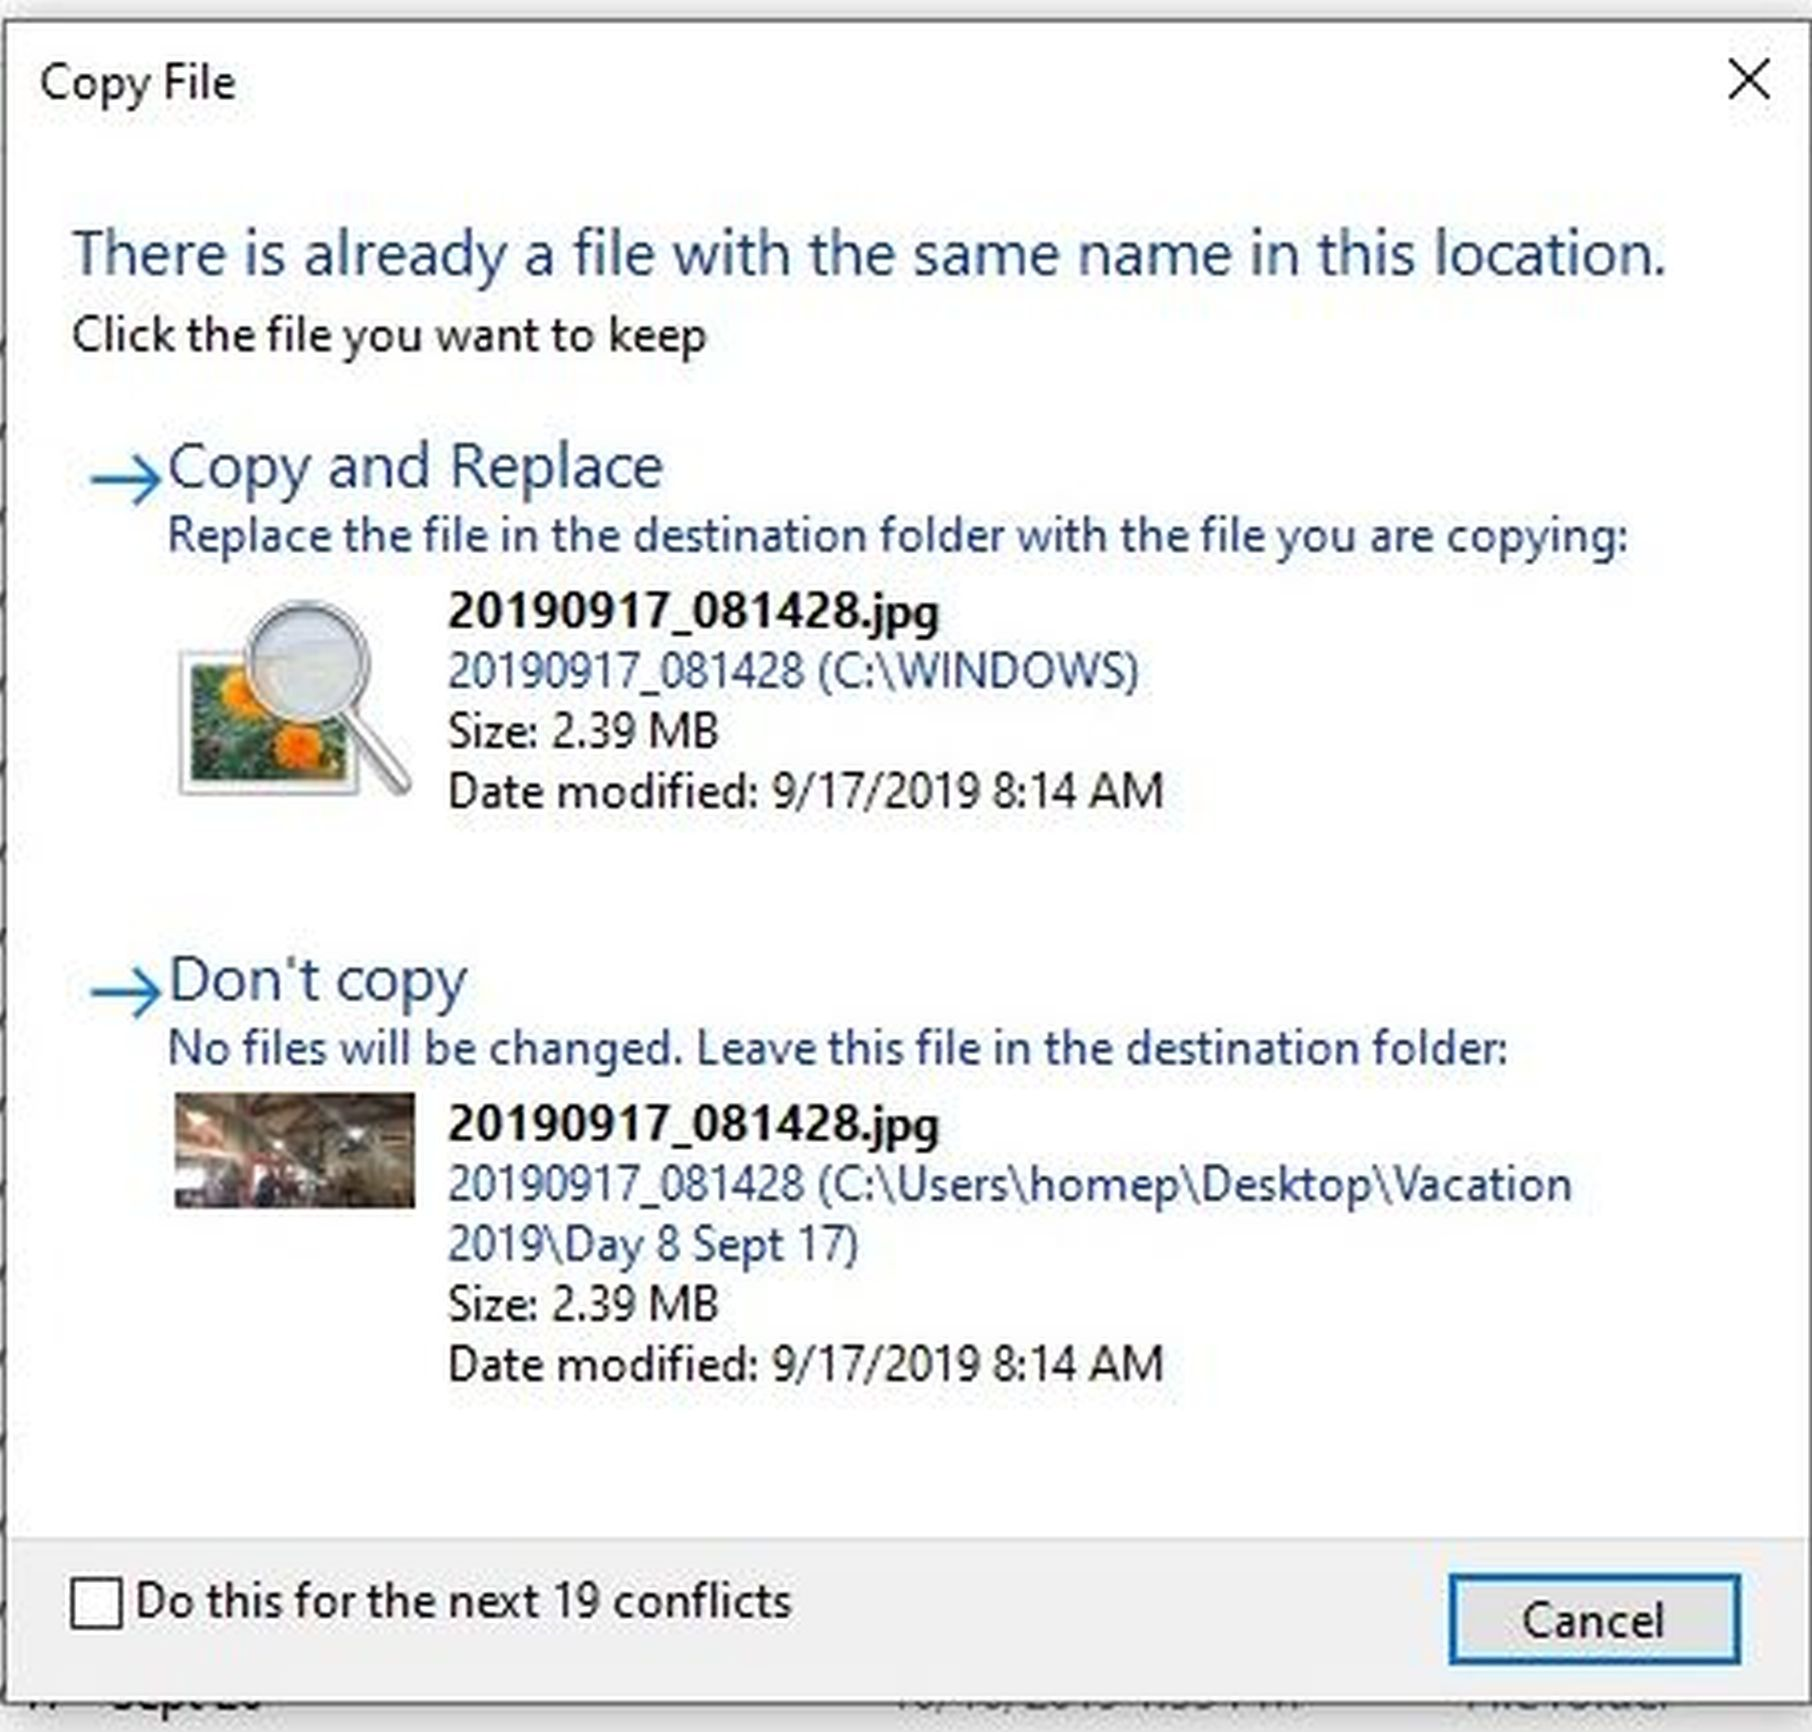 Compare Files Option Is Missing In My Win 10 for copying files w same name??? 05d674b5-87fe-46f5-a893-3f8639c1ff4e?upload=true.jpg